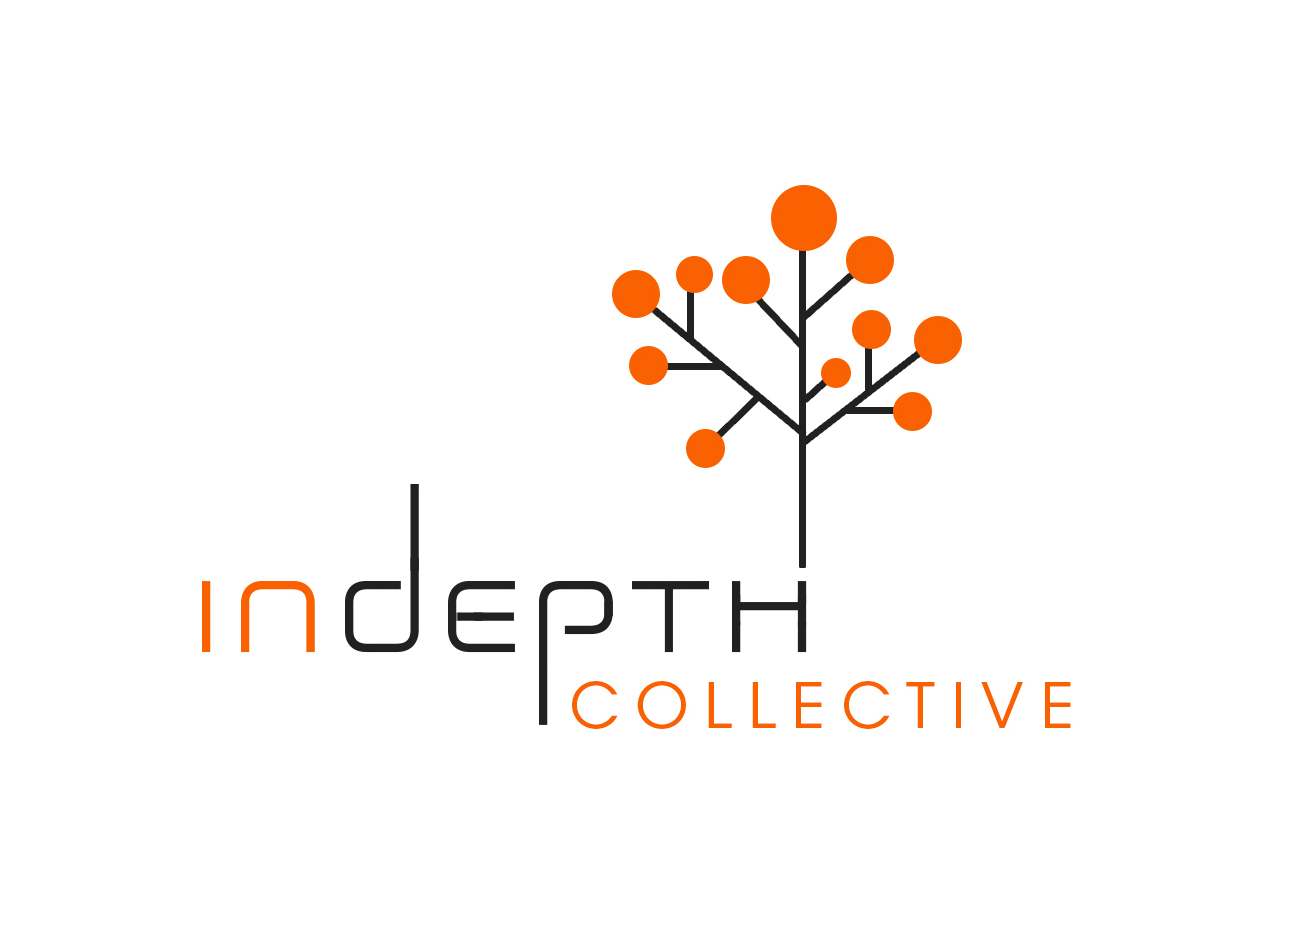 indepth-collective-logo-designers-agent-orange-branding-agency-south-african-company.jpg